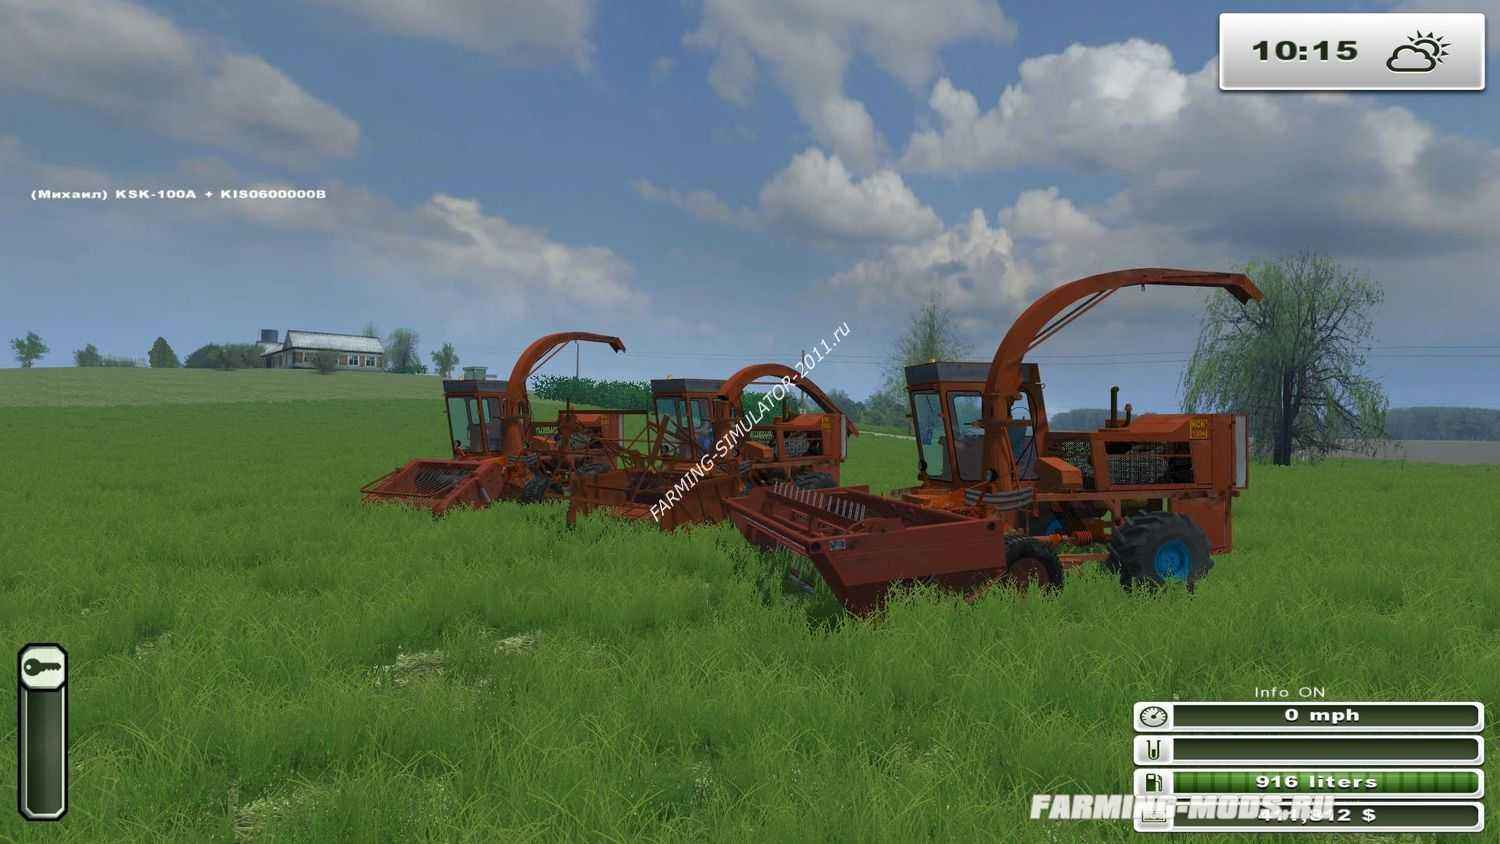 Мод КСК-100А Red для игры Farming Simulator 2013